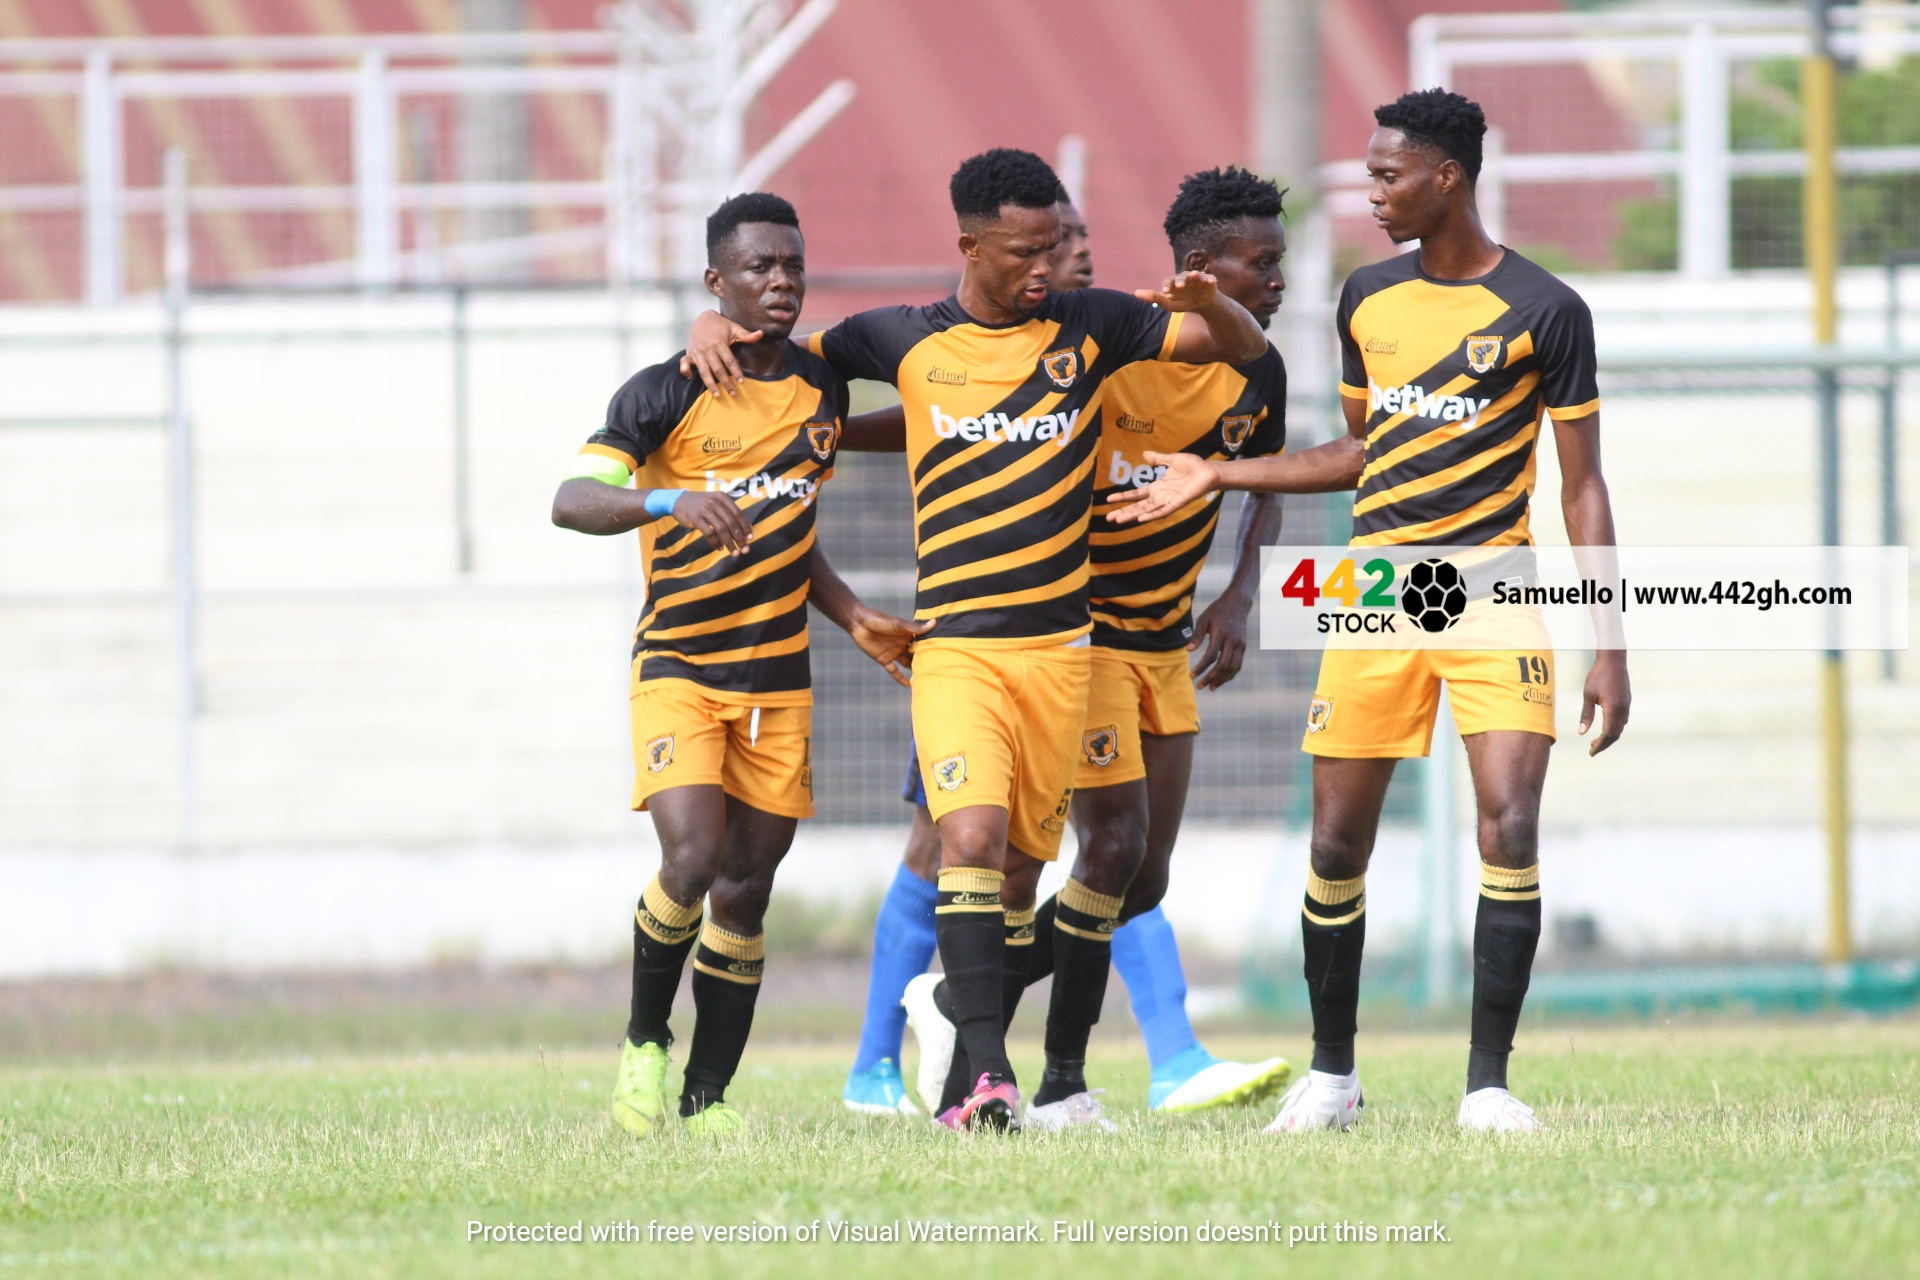 20/21 Ghana Premier League matchday 30: Ashgold recover from a goal down to hammer Liberty 5-1